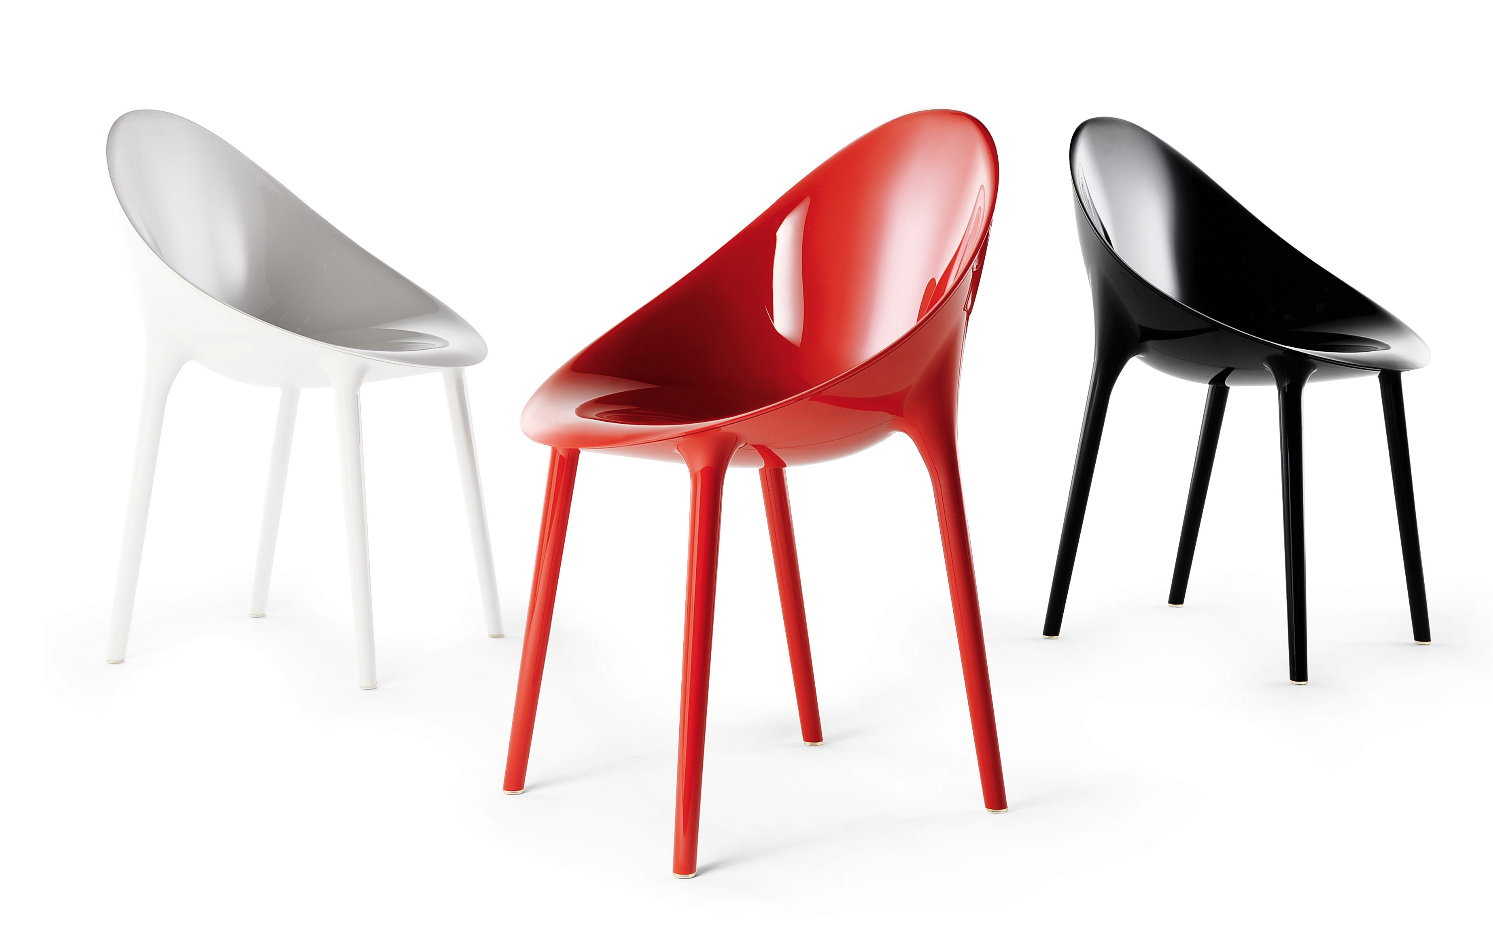 Super Impossible Chair by Philippe Starck for Kartell